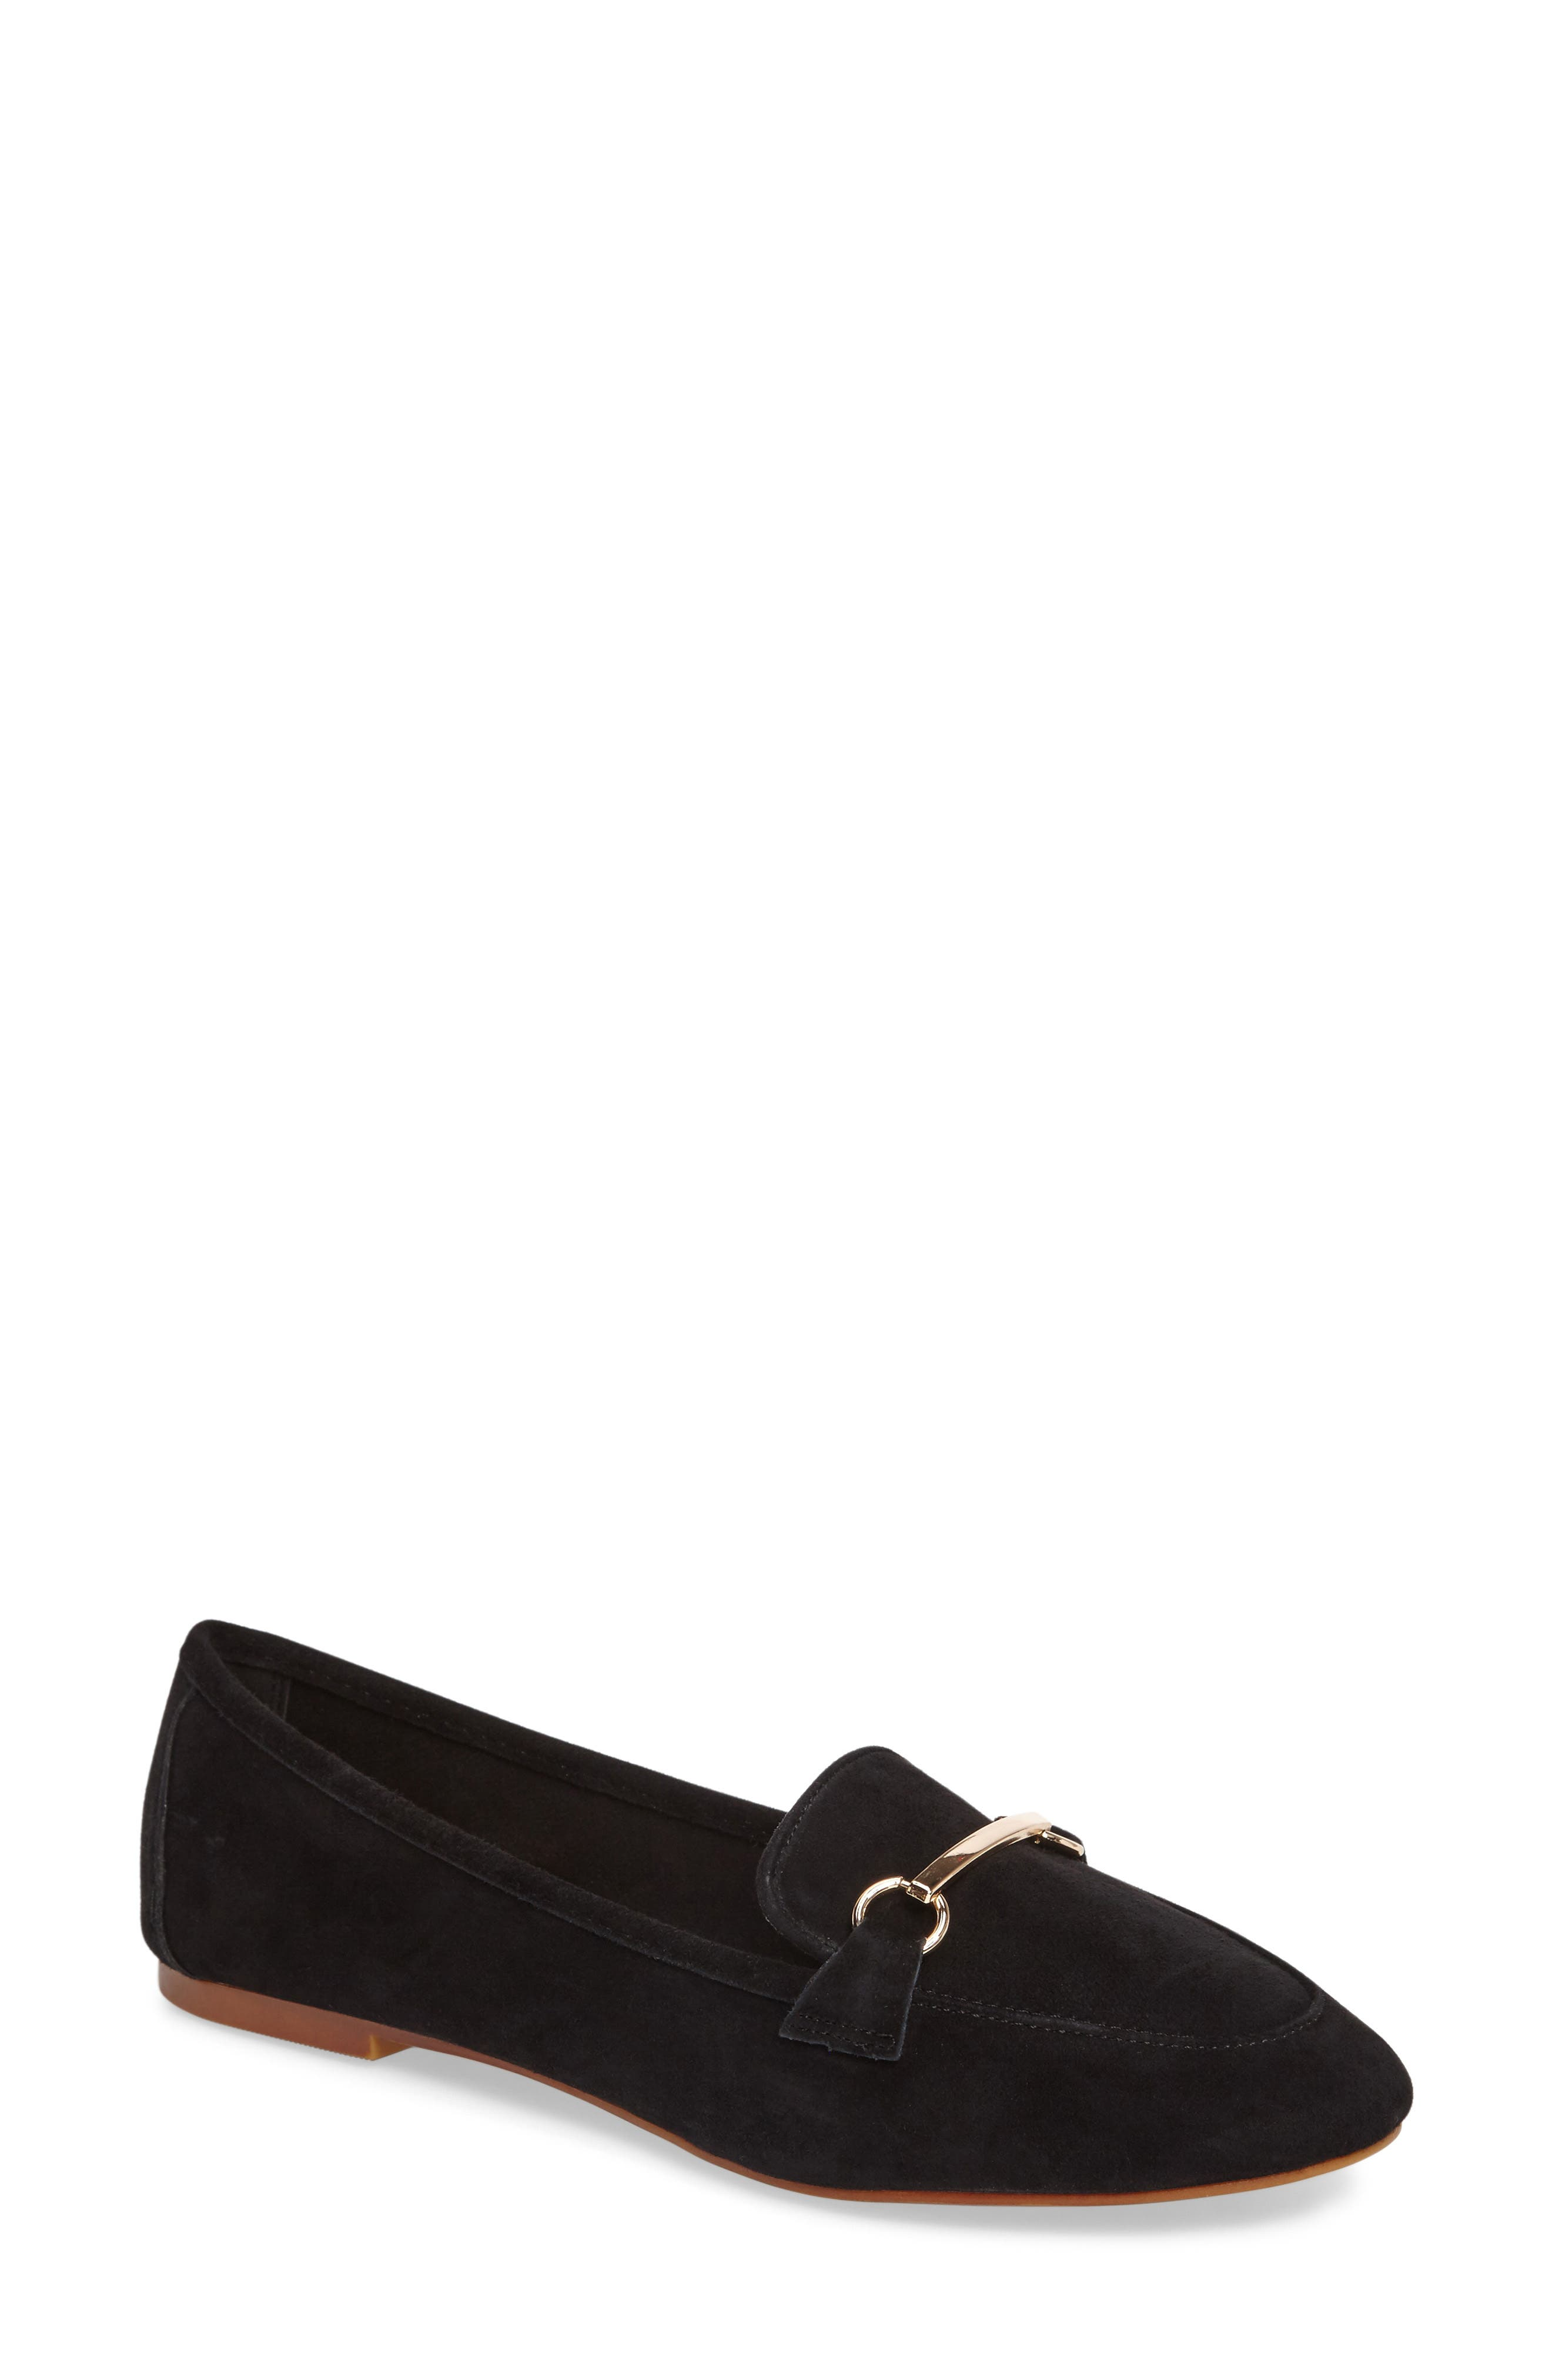 Alternate Image 1 Selected - Topshop Libby Softy Loafer (Women)